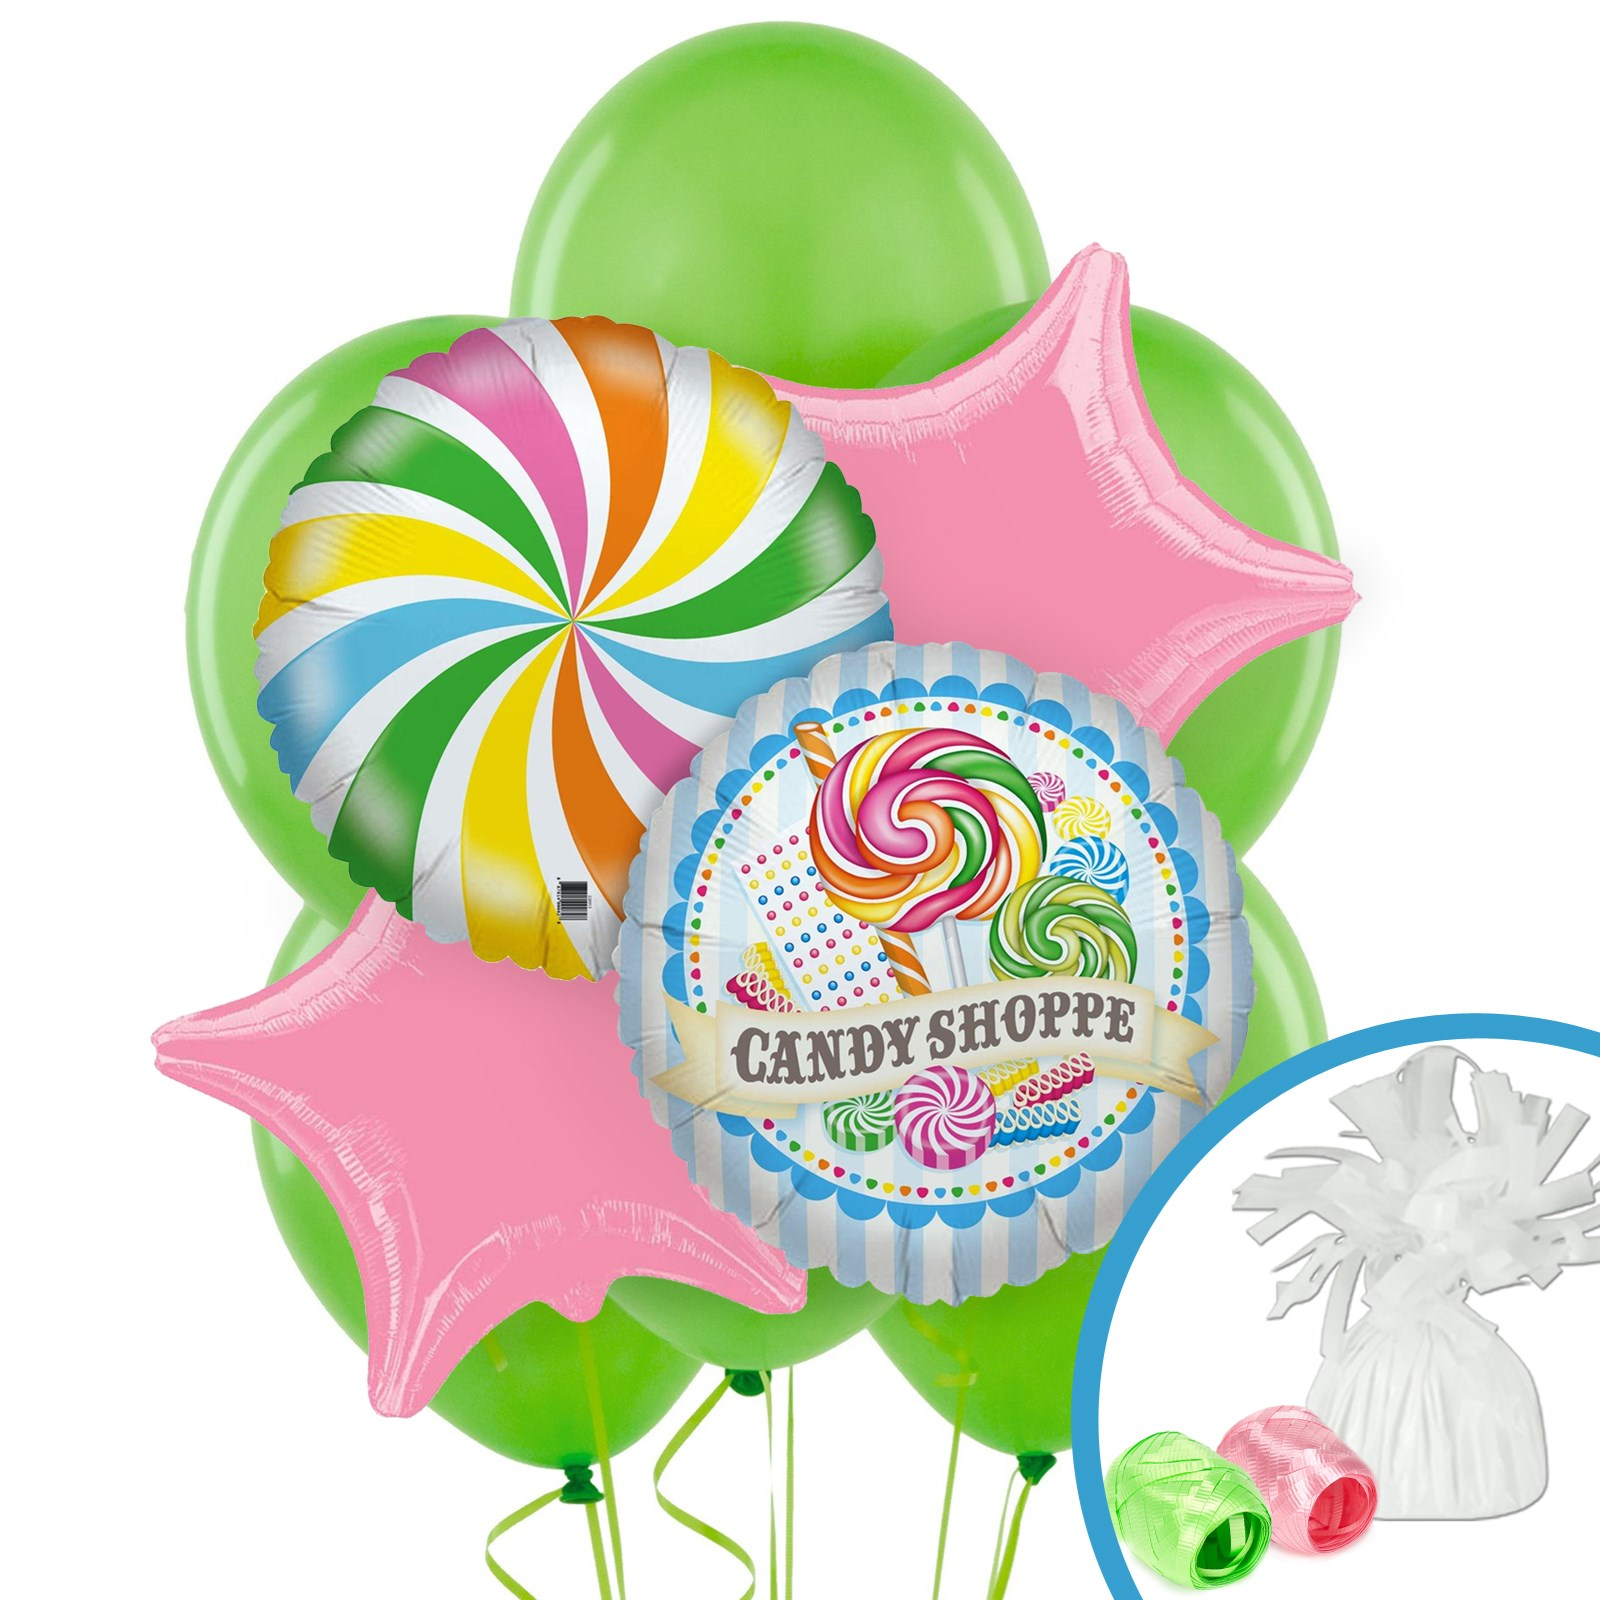 Candy Shoppe Balloon Bouquet